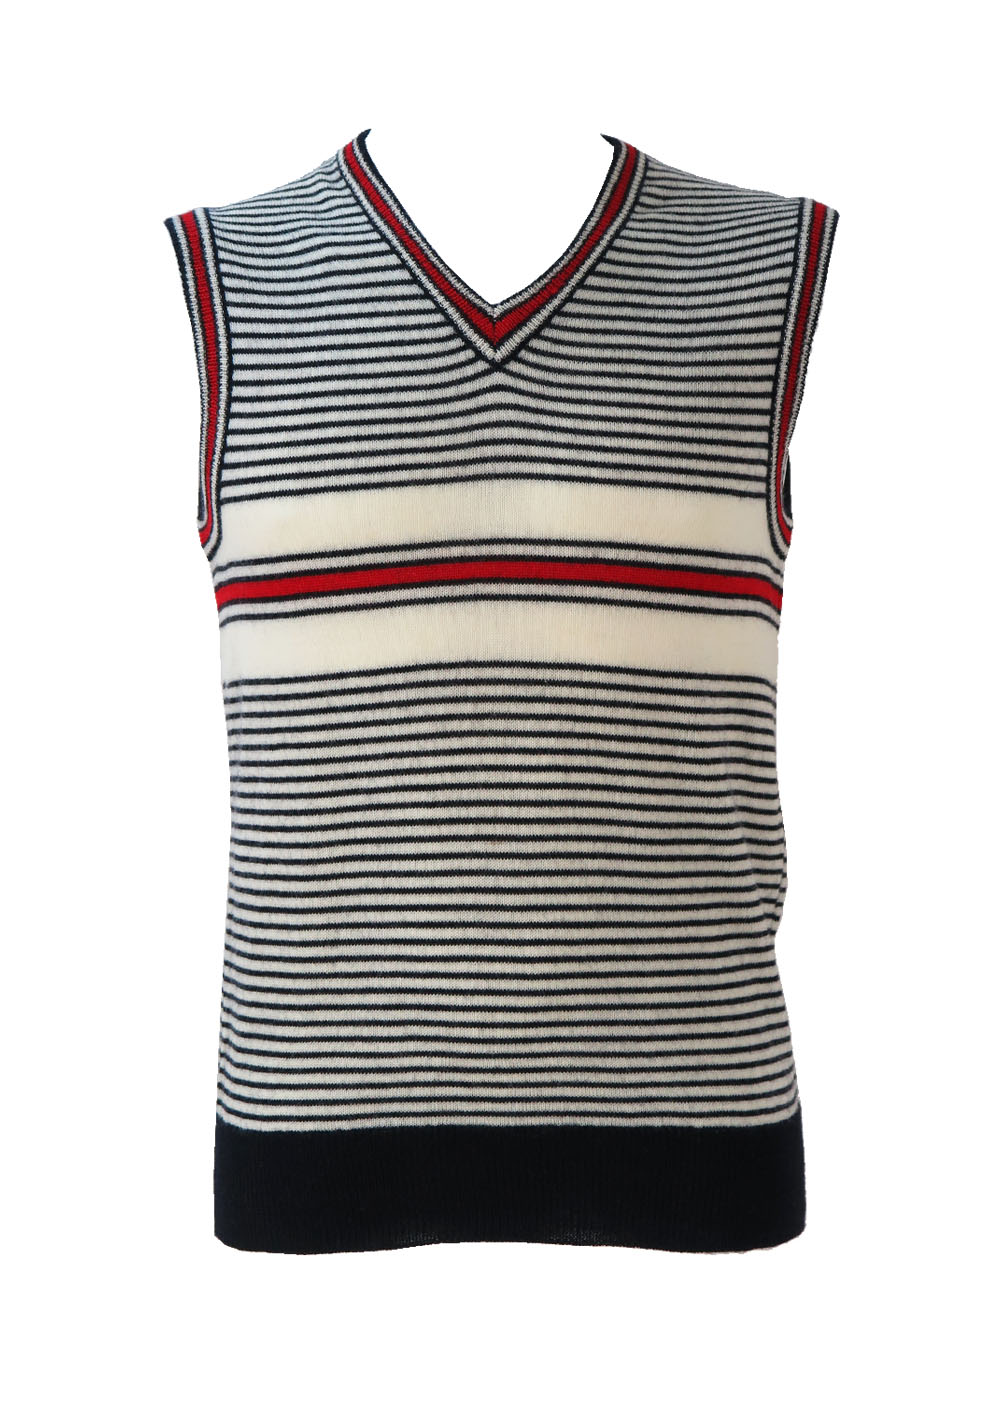 Get the best deals on stripe white gap tank top and save up to 70% off at Poshmark now! Whatever you're shopping for, we've got it.